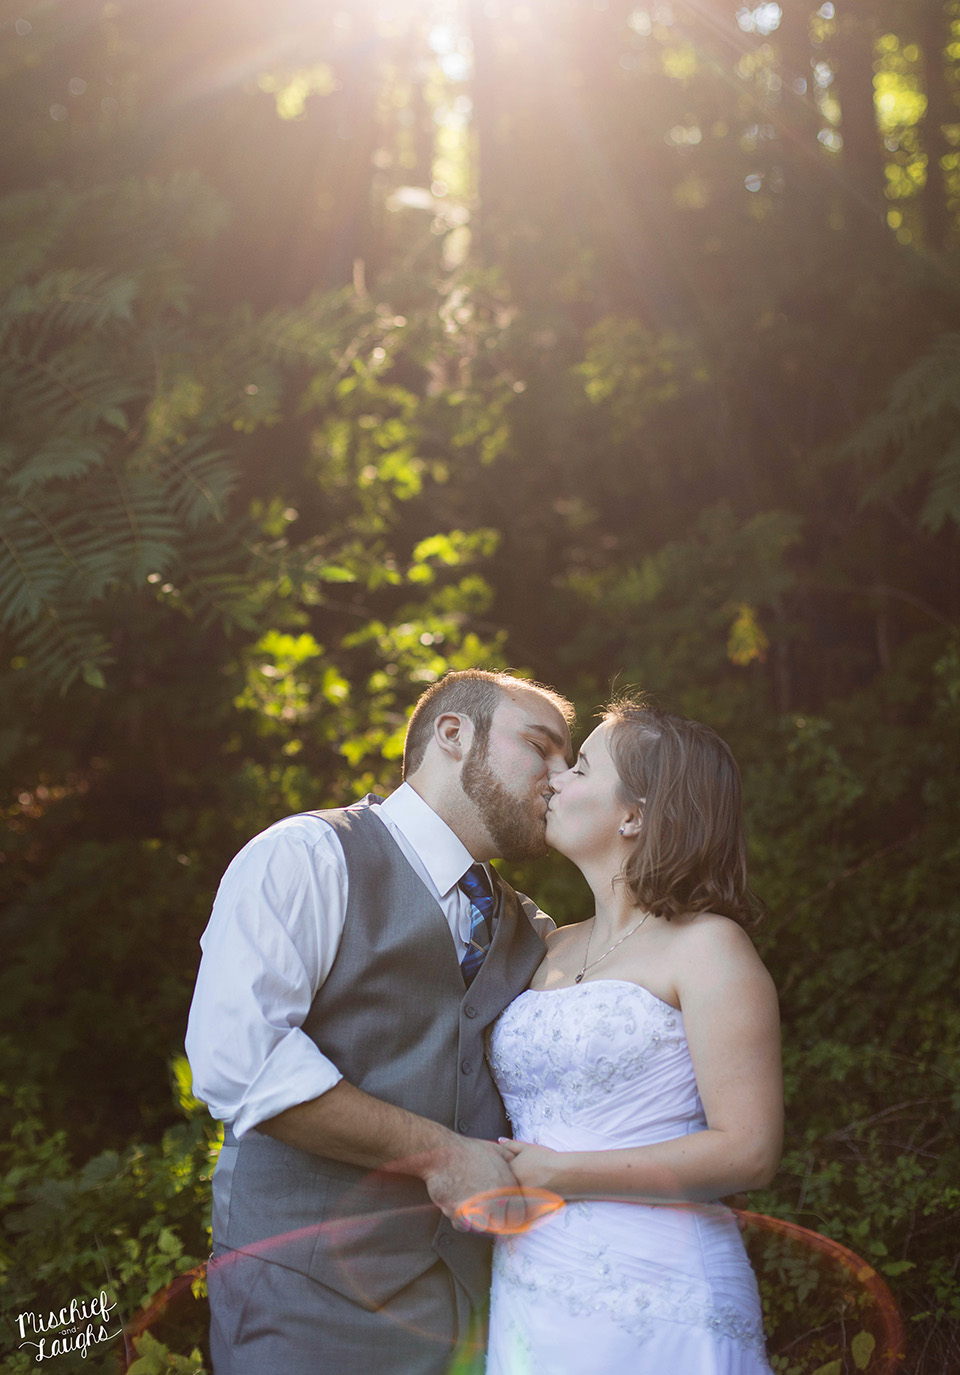 Pratt's Falls, Camp Brockway Wedding, Syracuse NY - Mischief and Laughs Photography